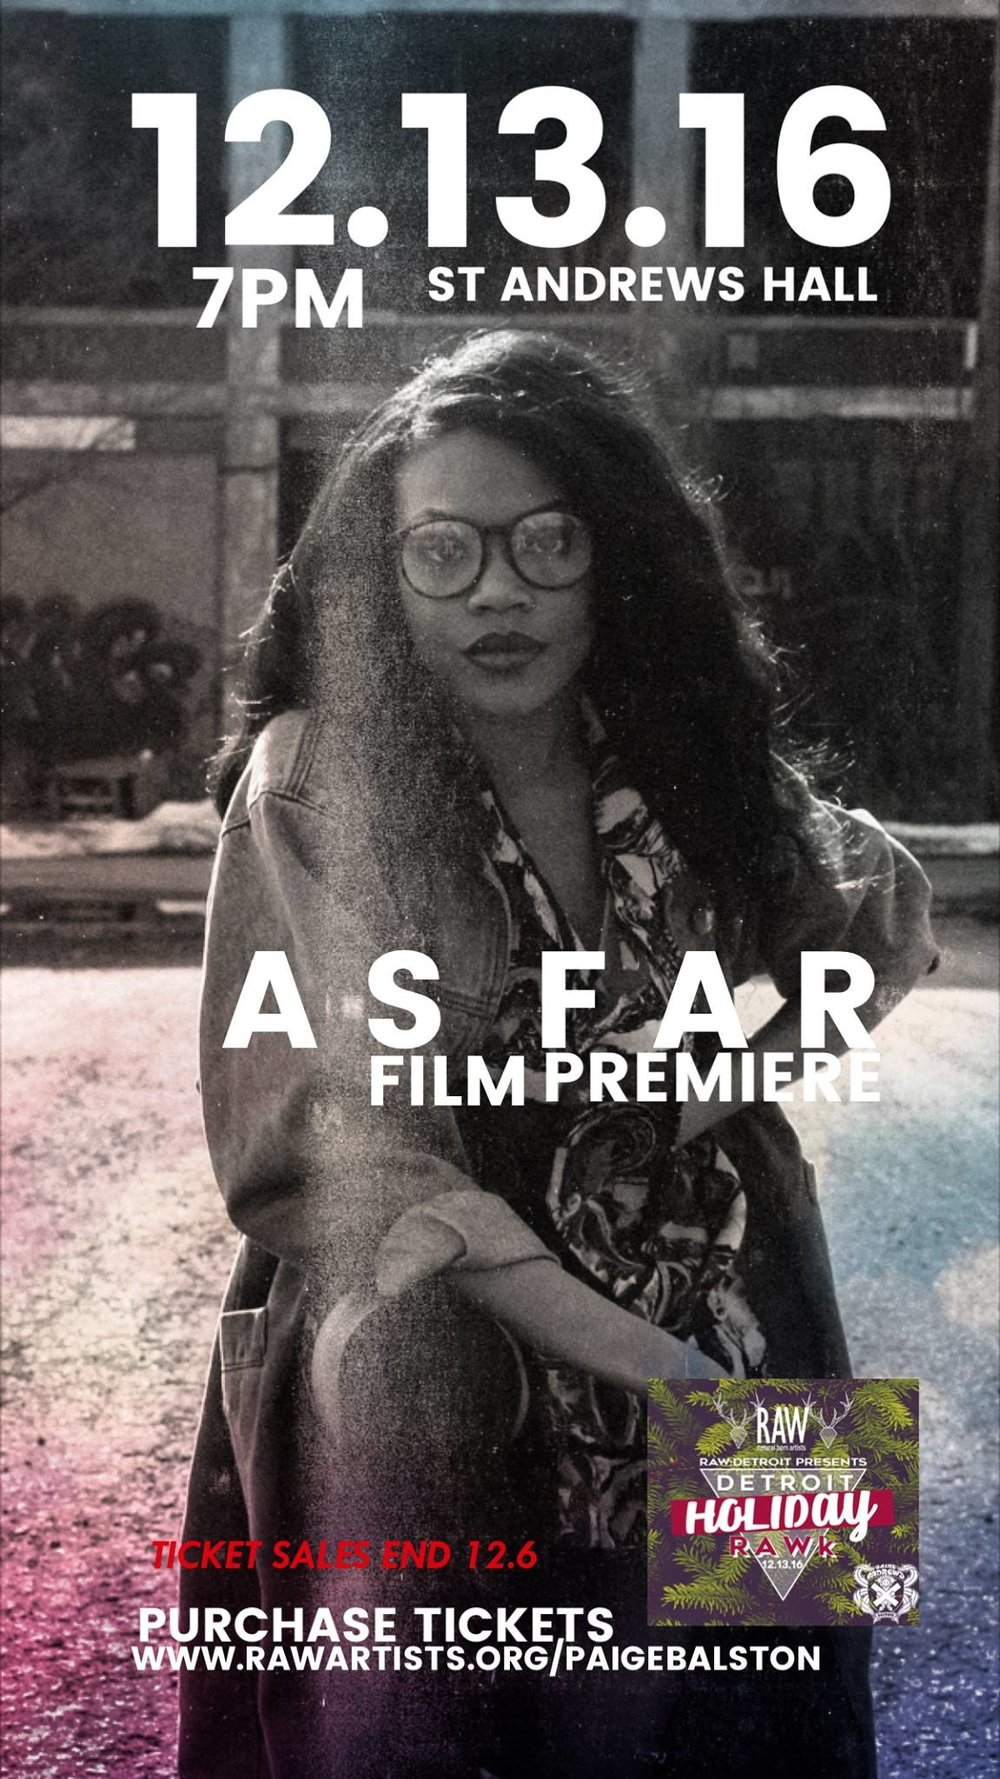 Purchase Tickets to the premiere of 'As Far'  here